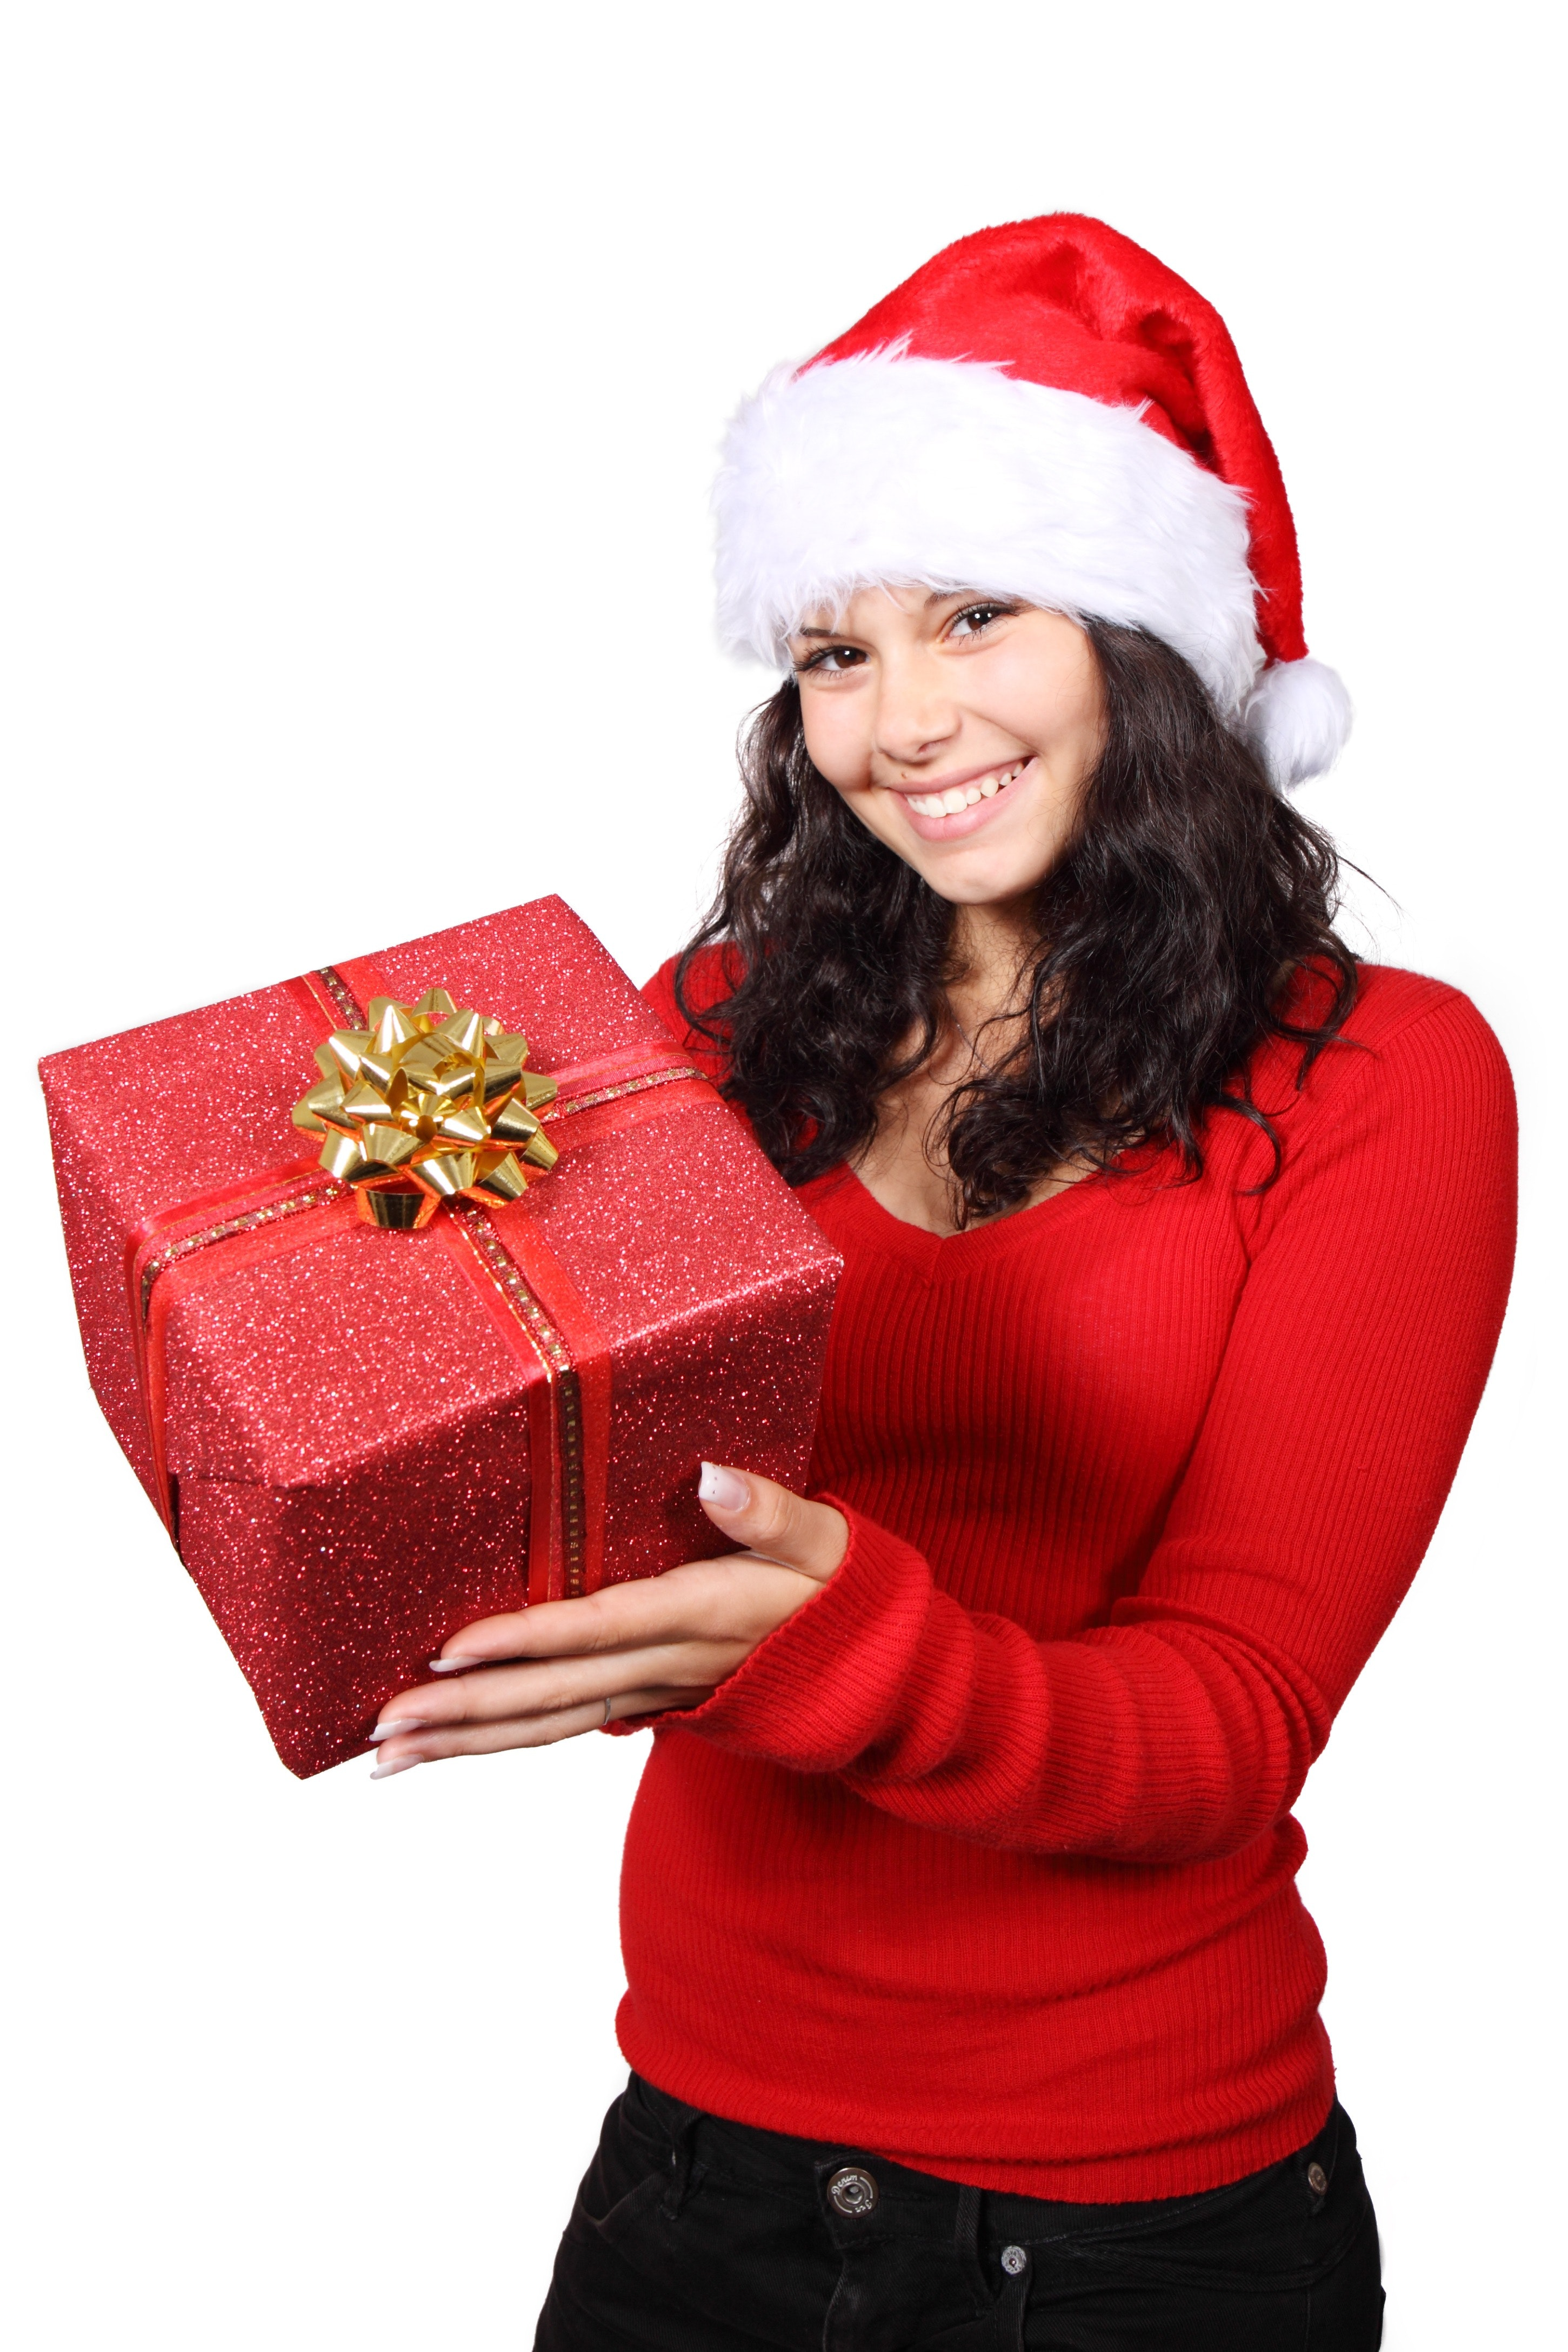 Woman in red long sleeve holding red gift box photo